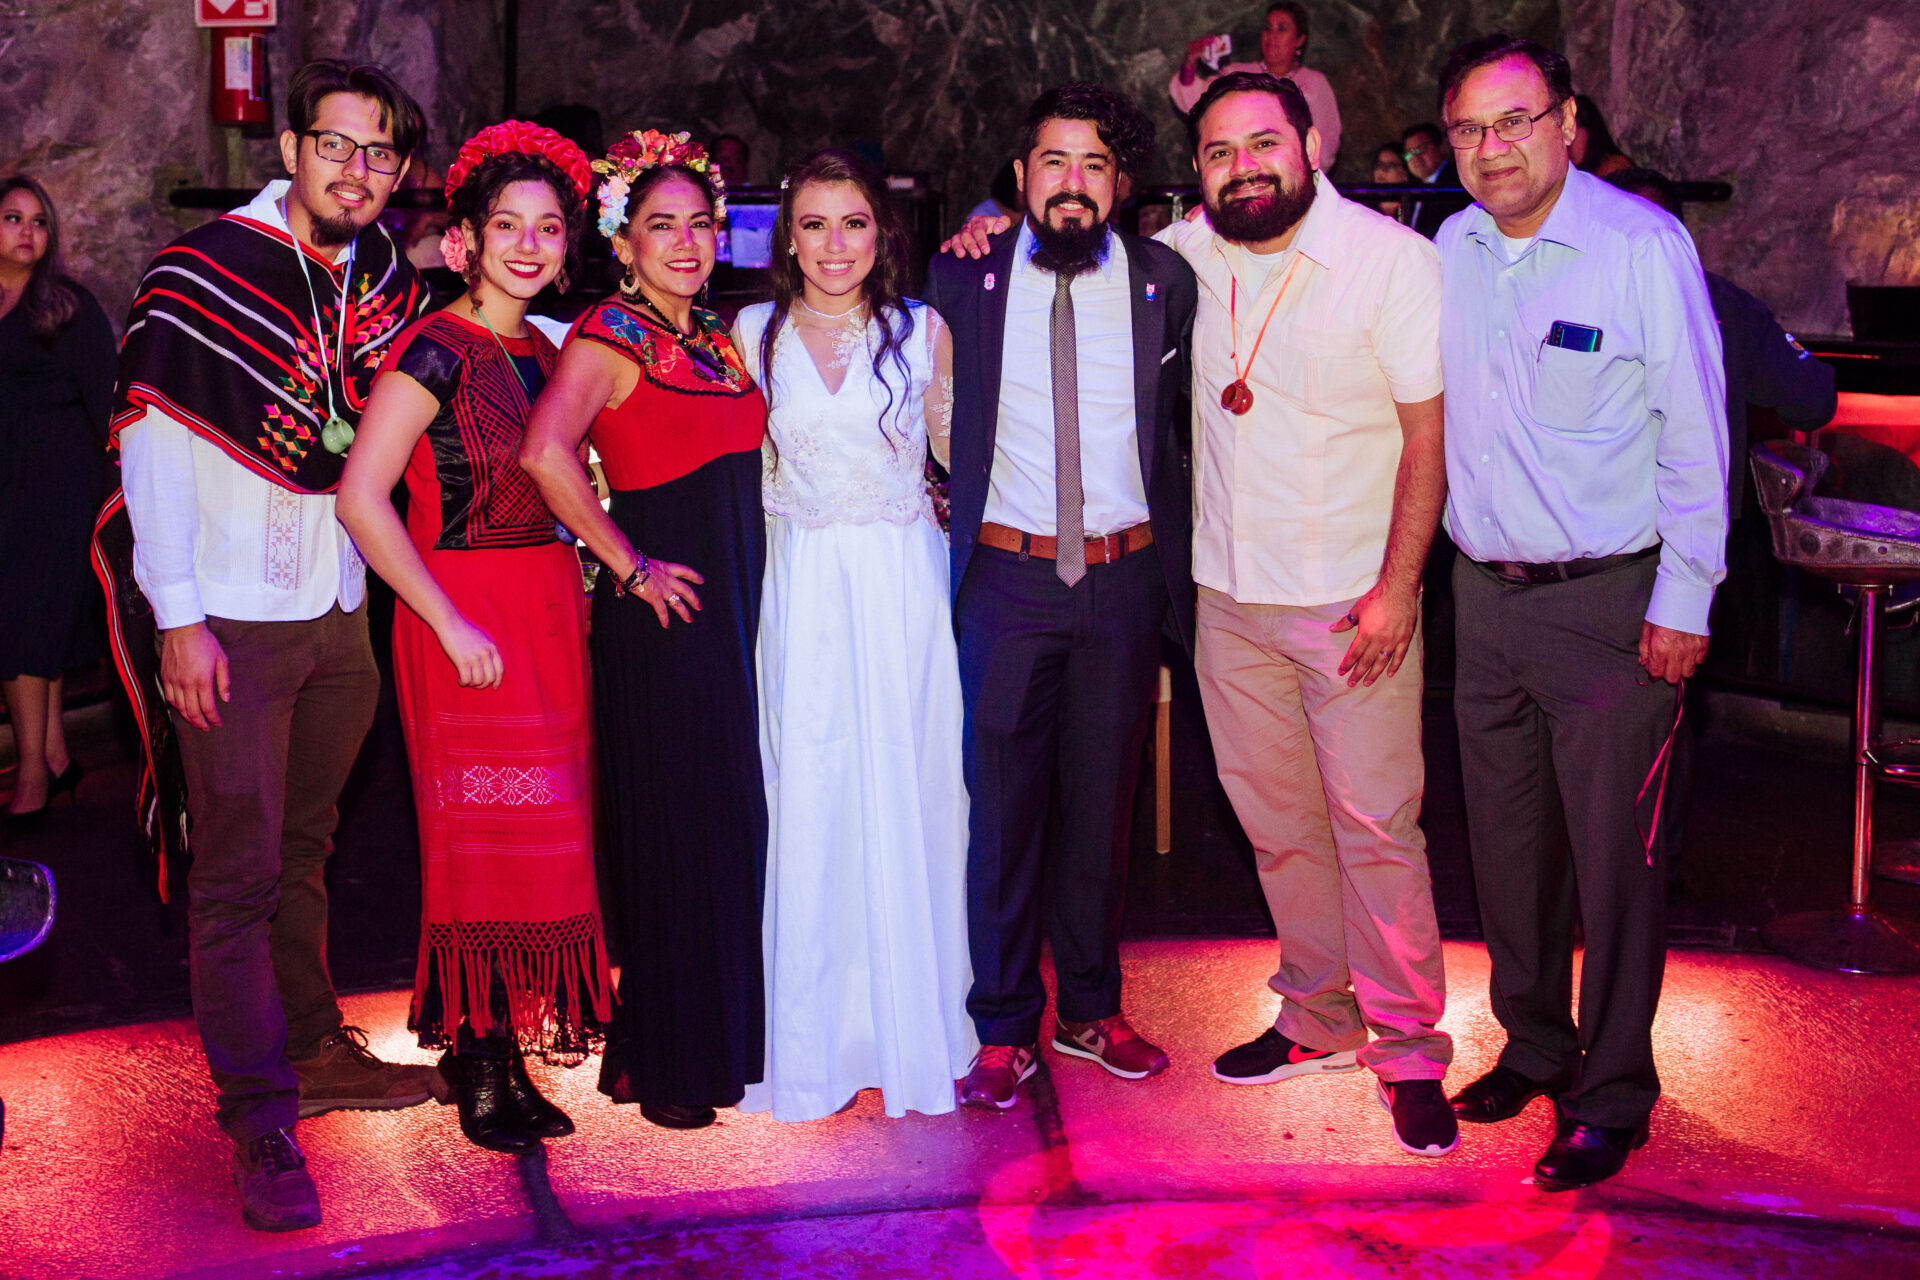 javier_noriega_fotografo_bodas_la_mina_club_zacatecas_wedding_photographer6